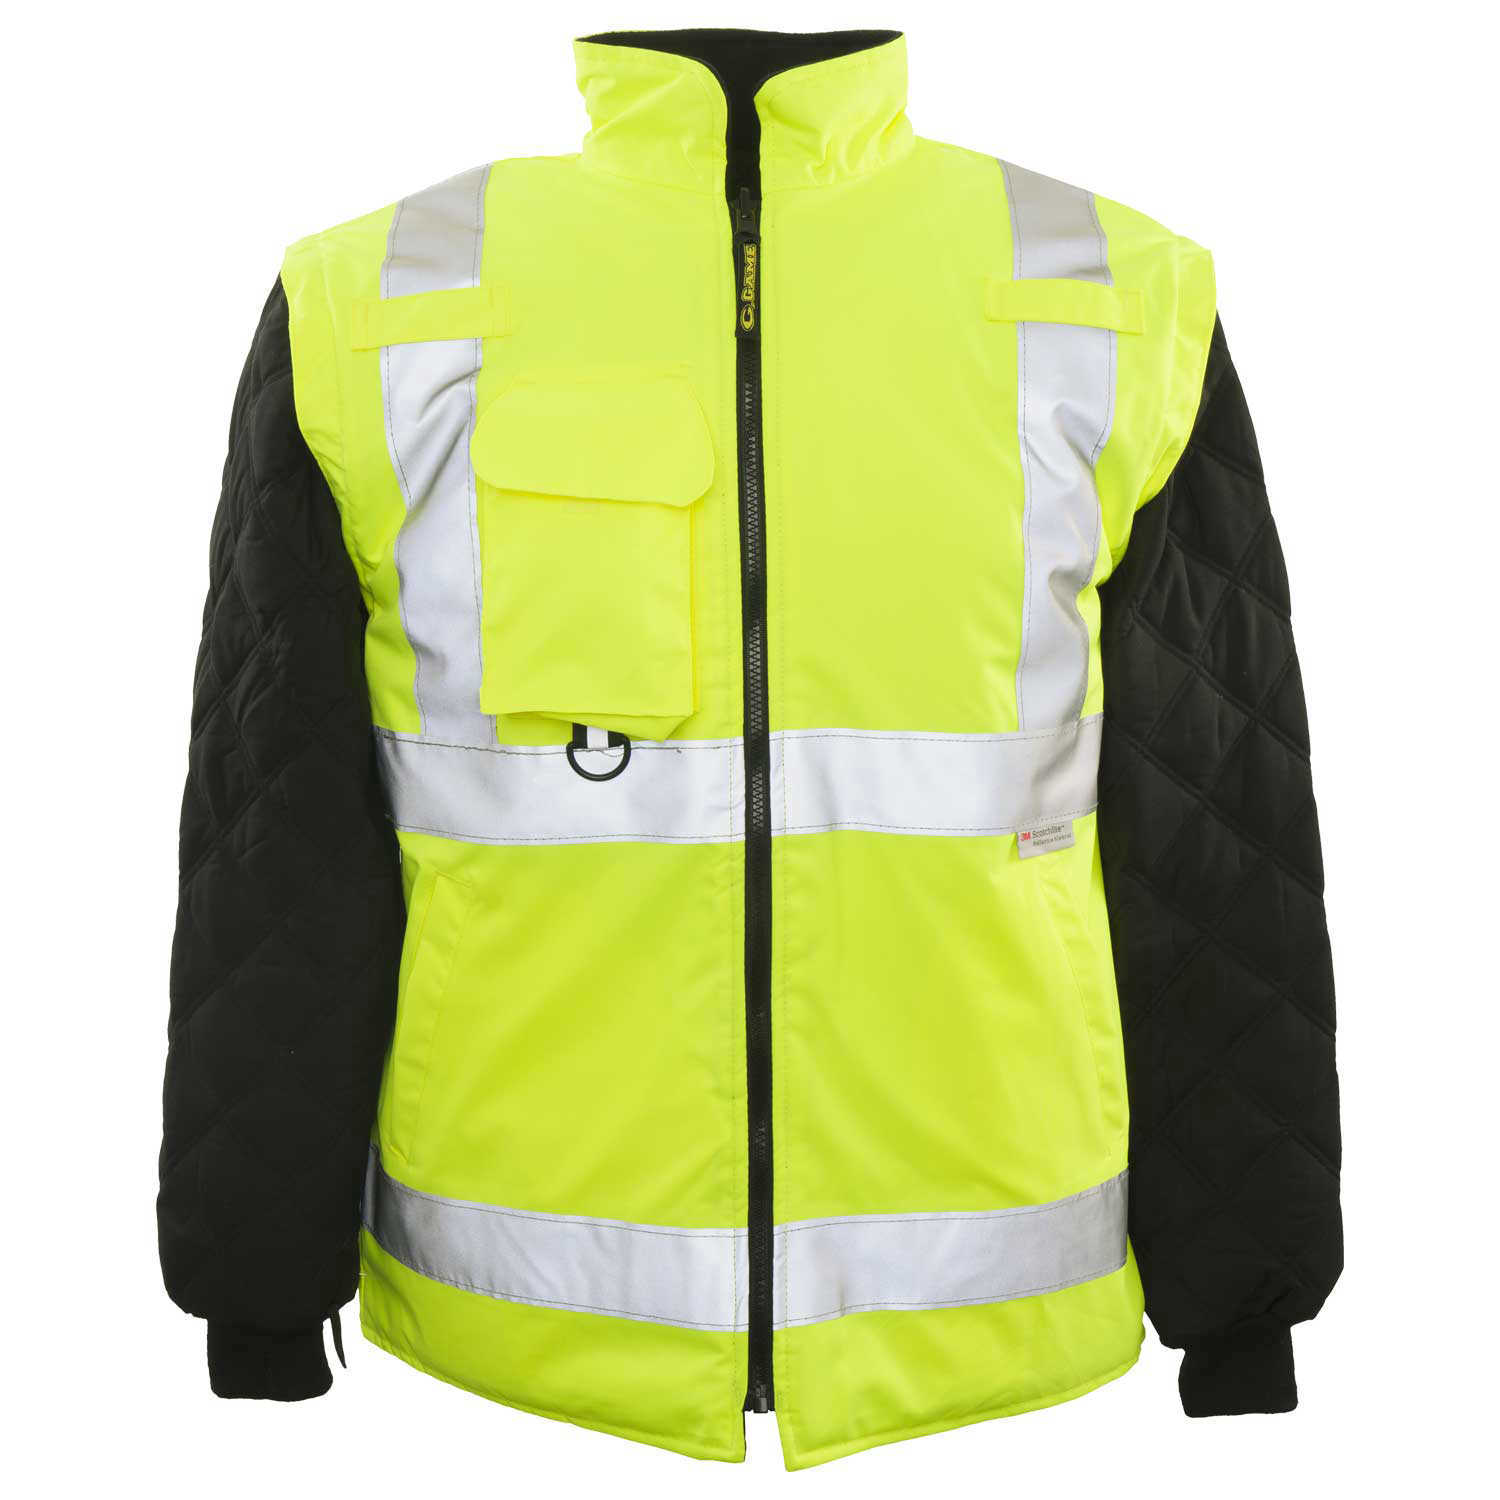 Game Workwear 6-in-1 Jacket, Neon Lime